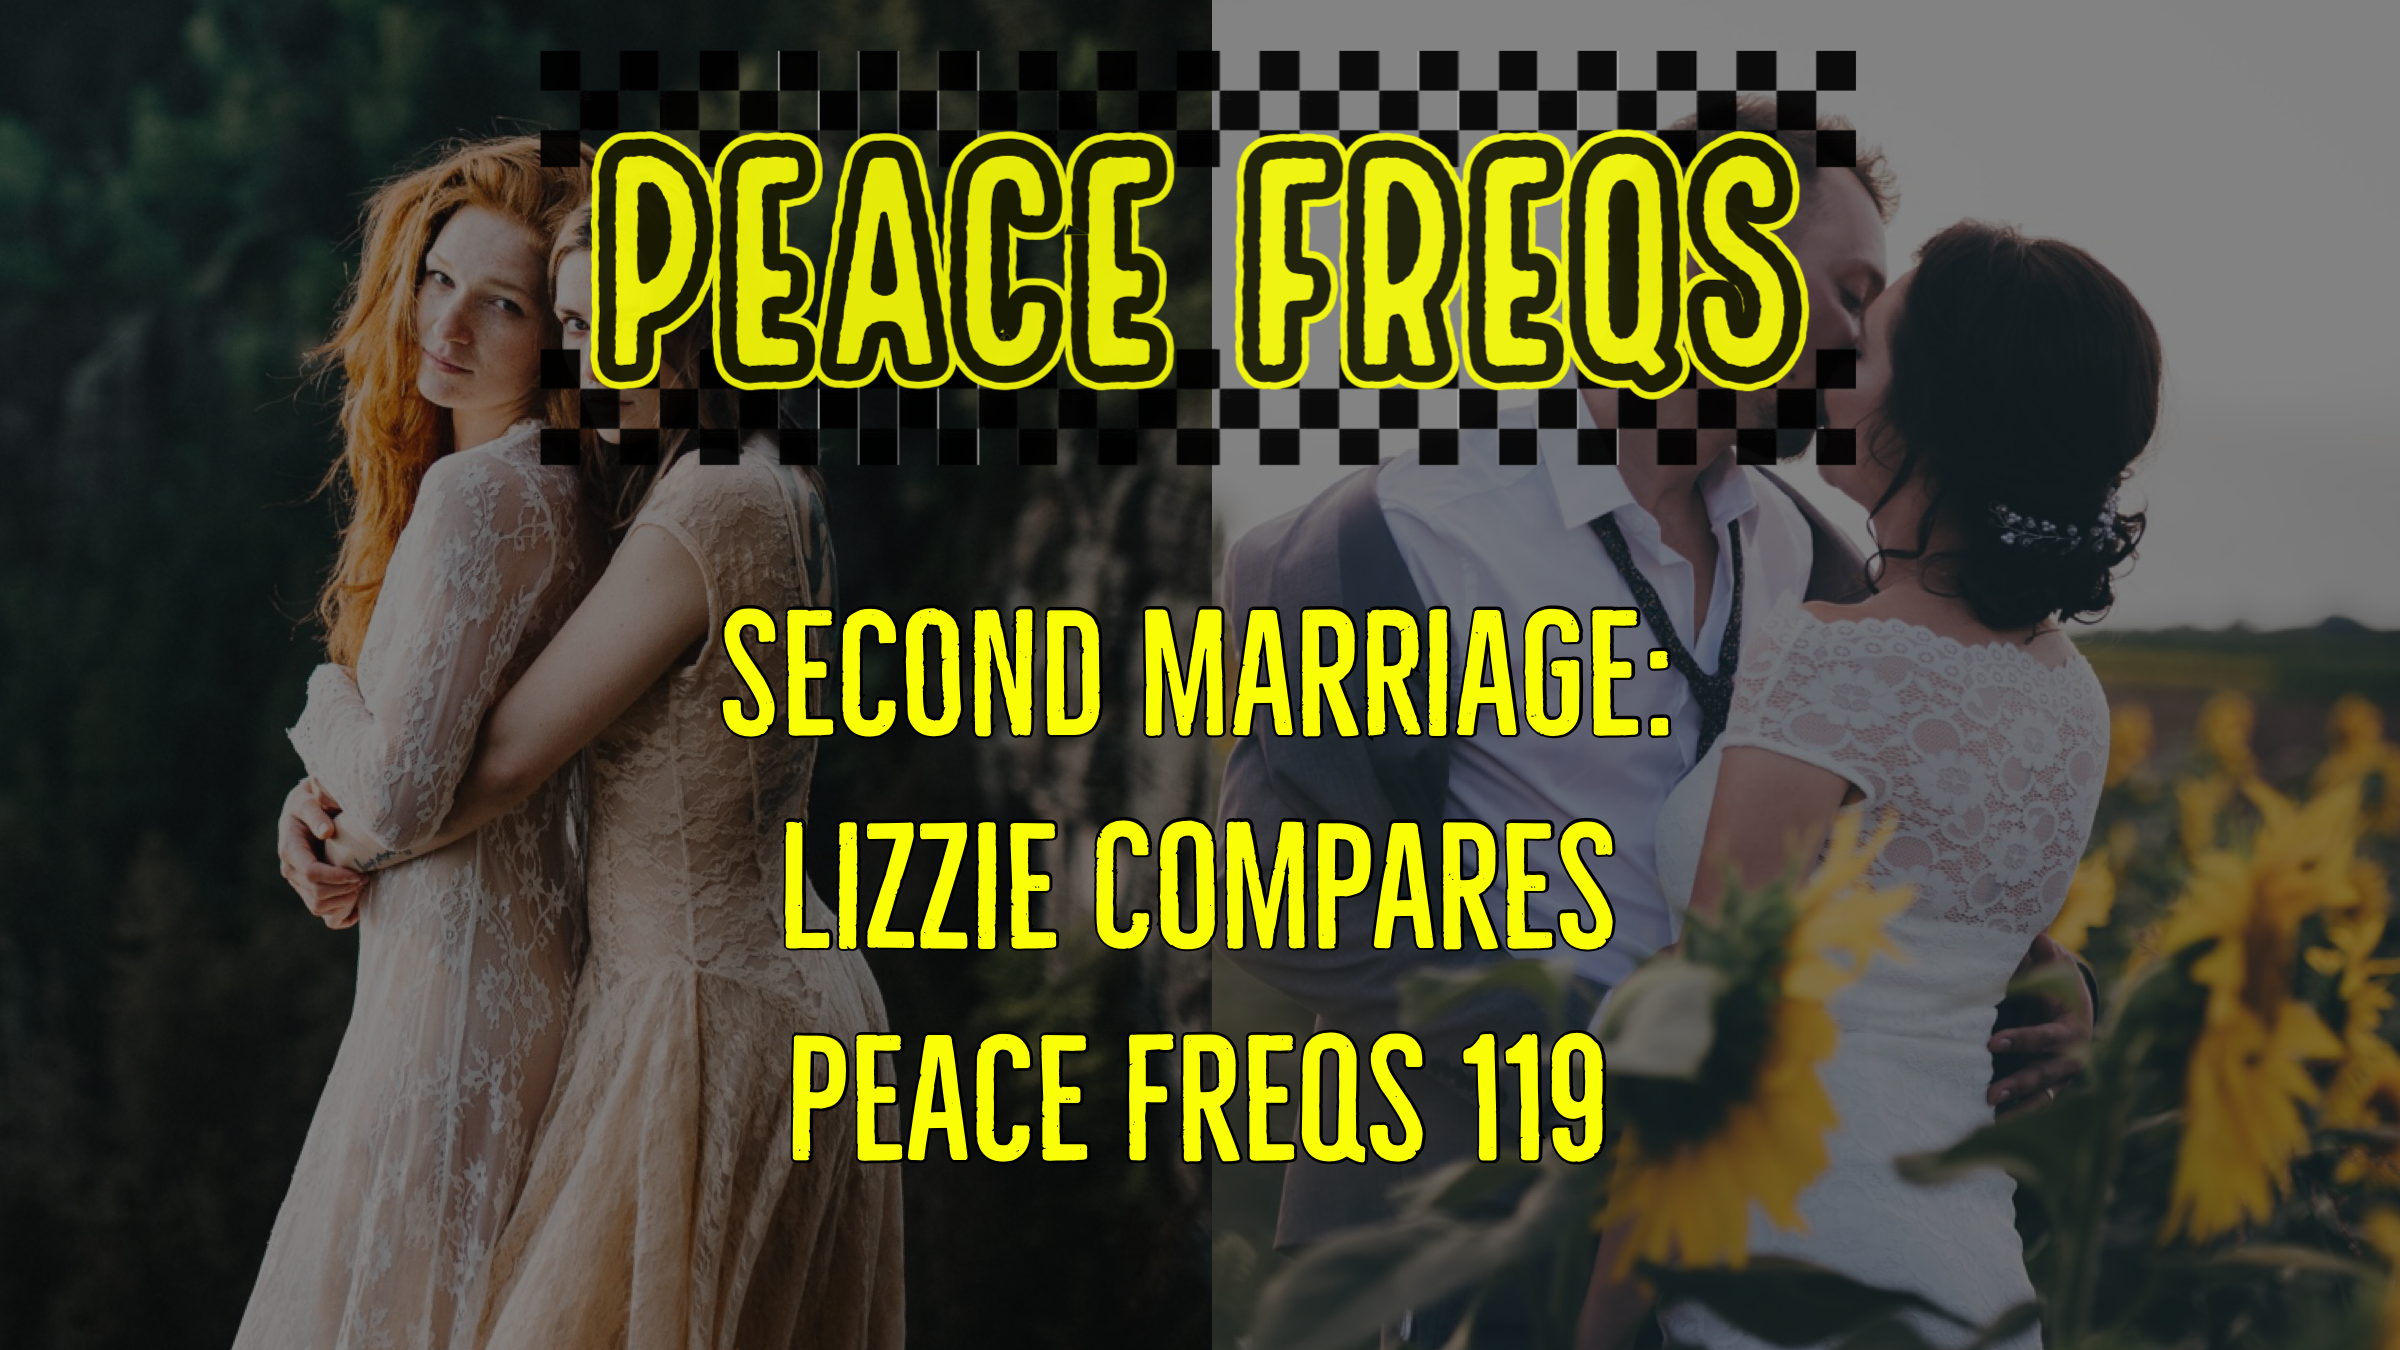 Second Marriage: Lizzie Compares – Peace Freqs 119